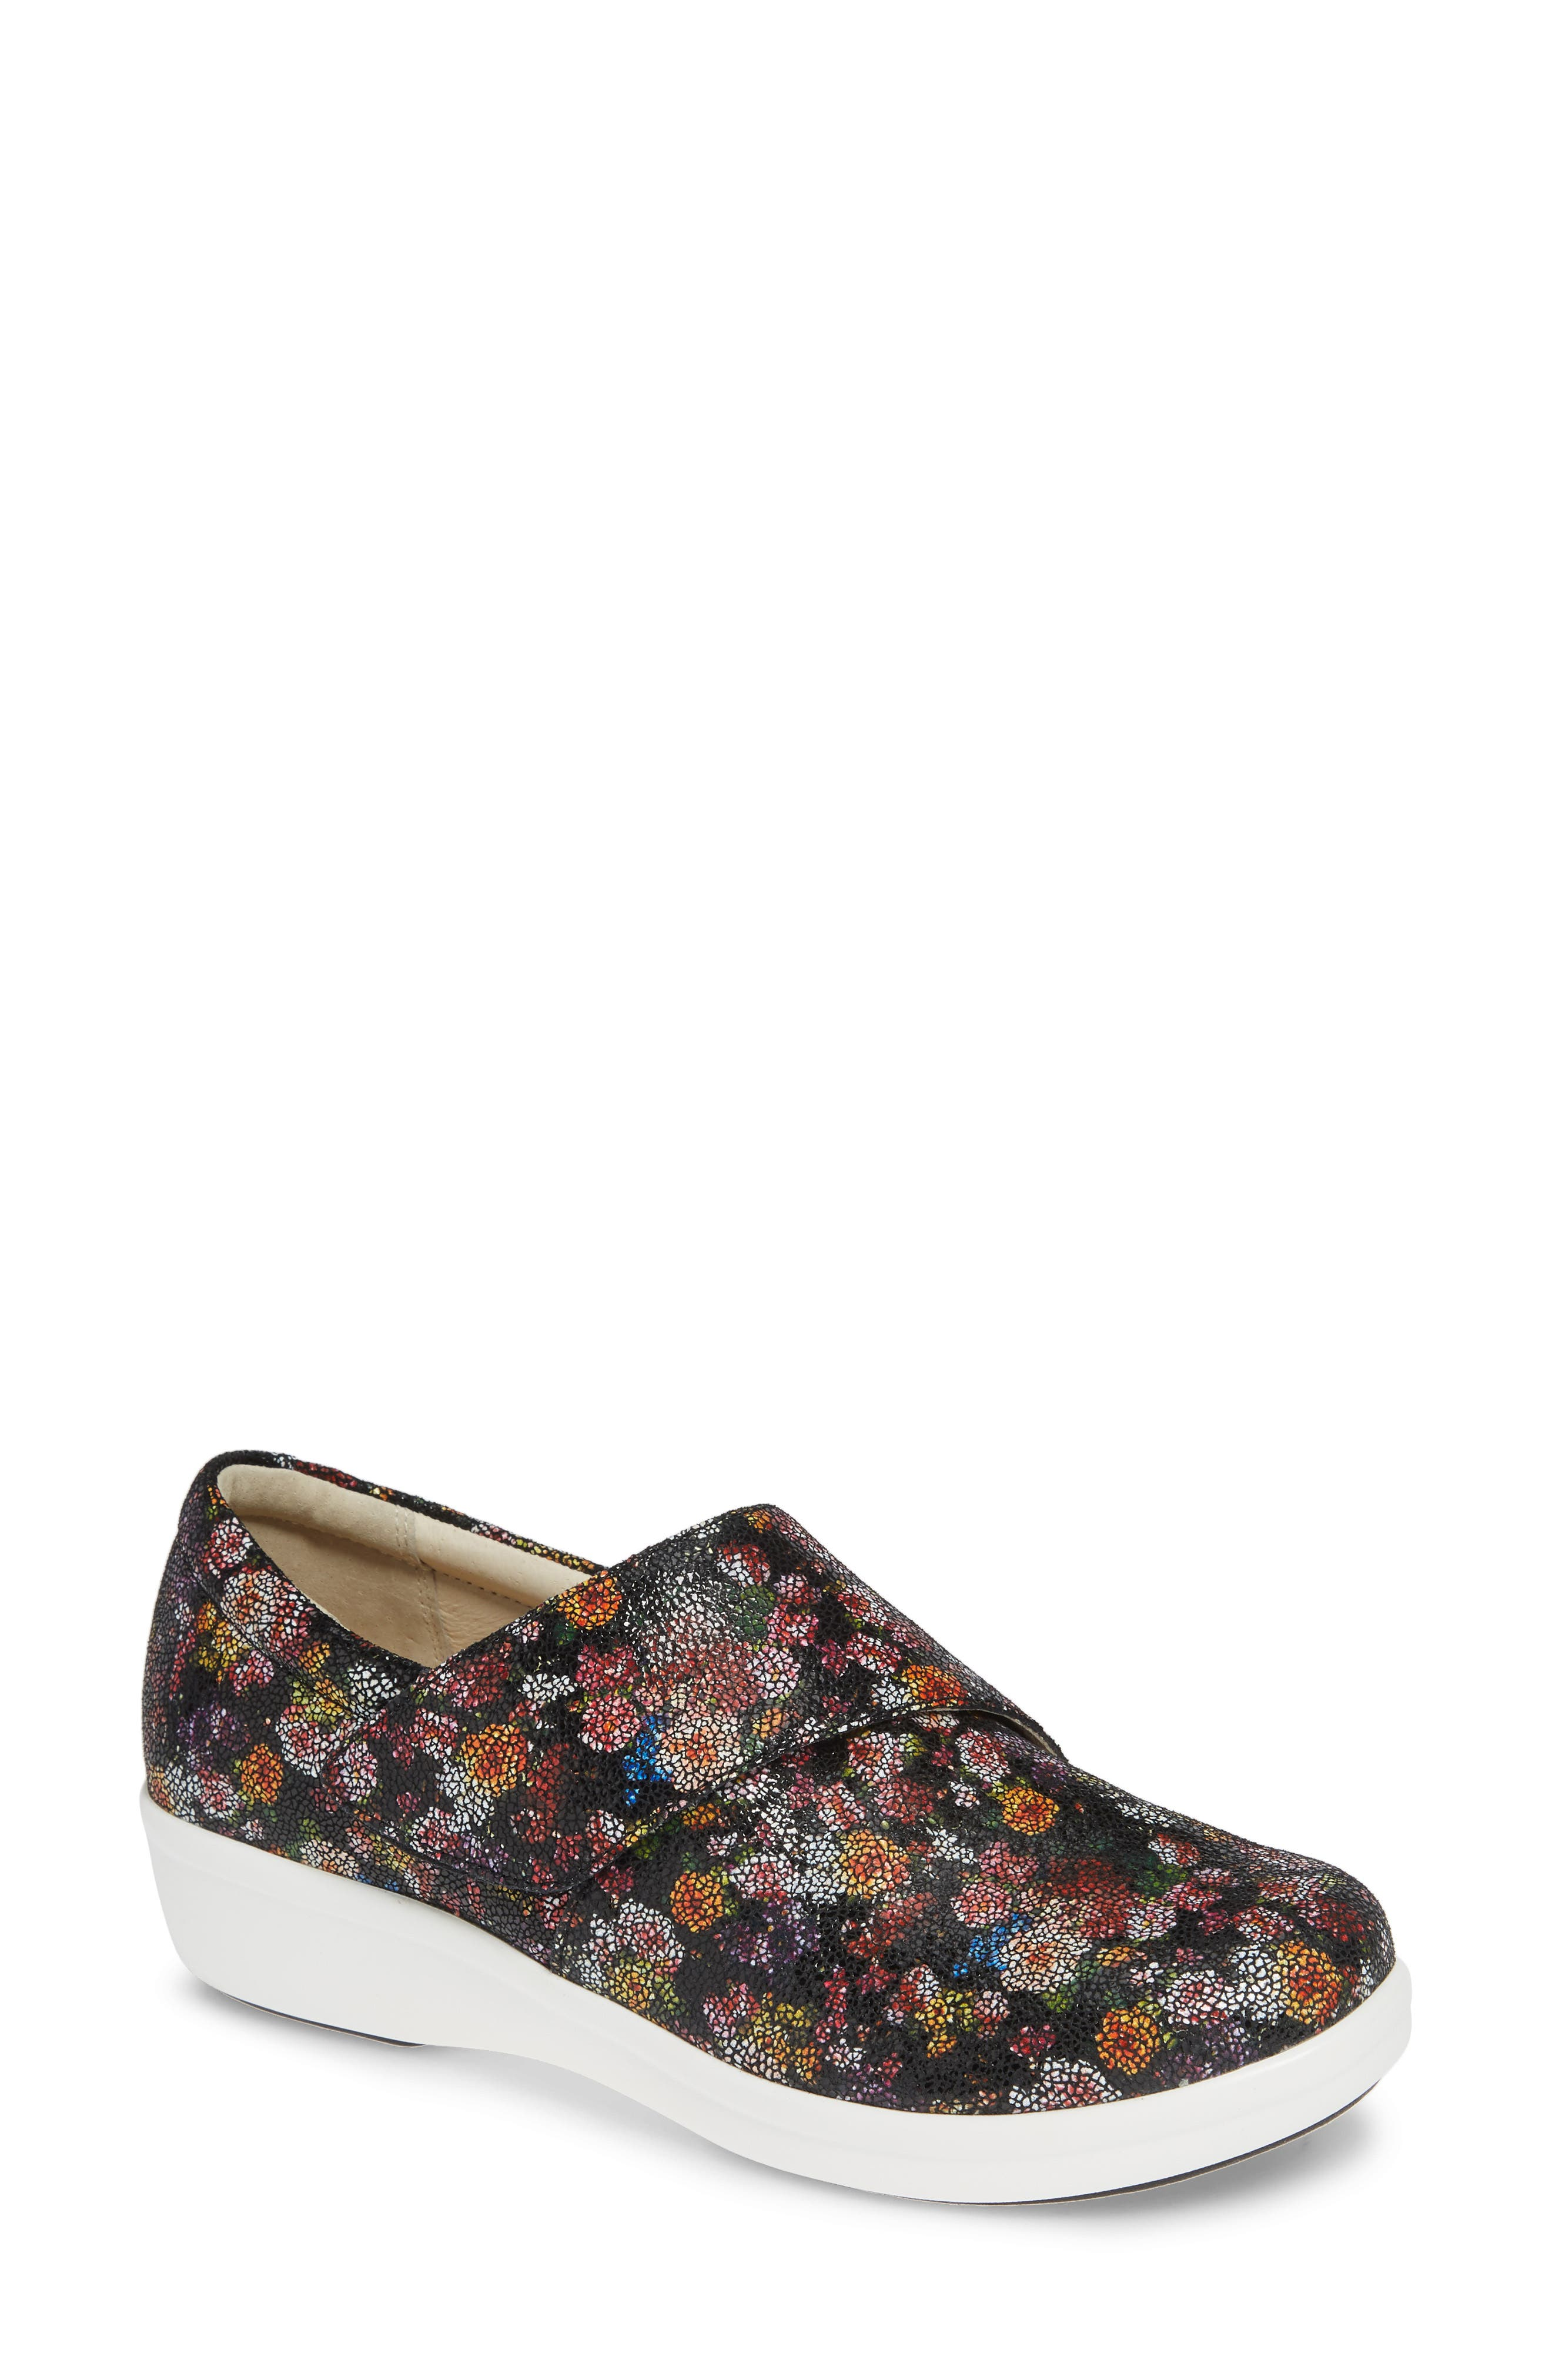 Qin Slip-On, Main, color, GARLAND LEATHER